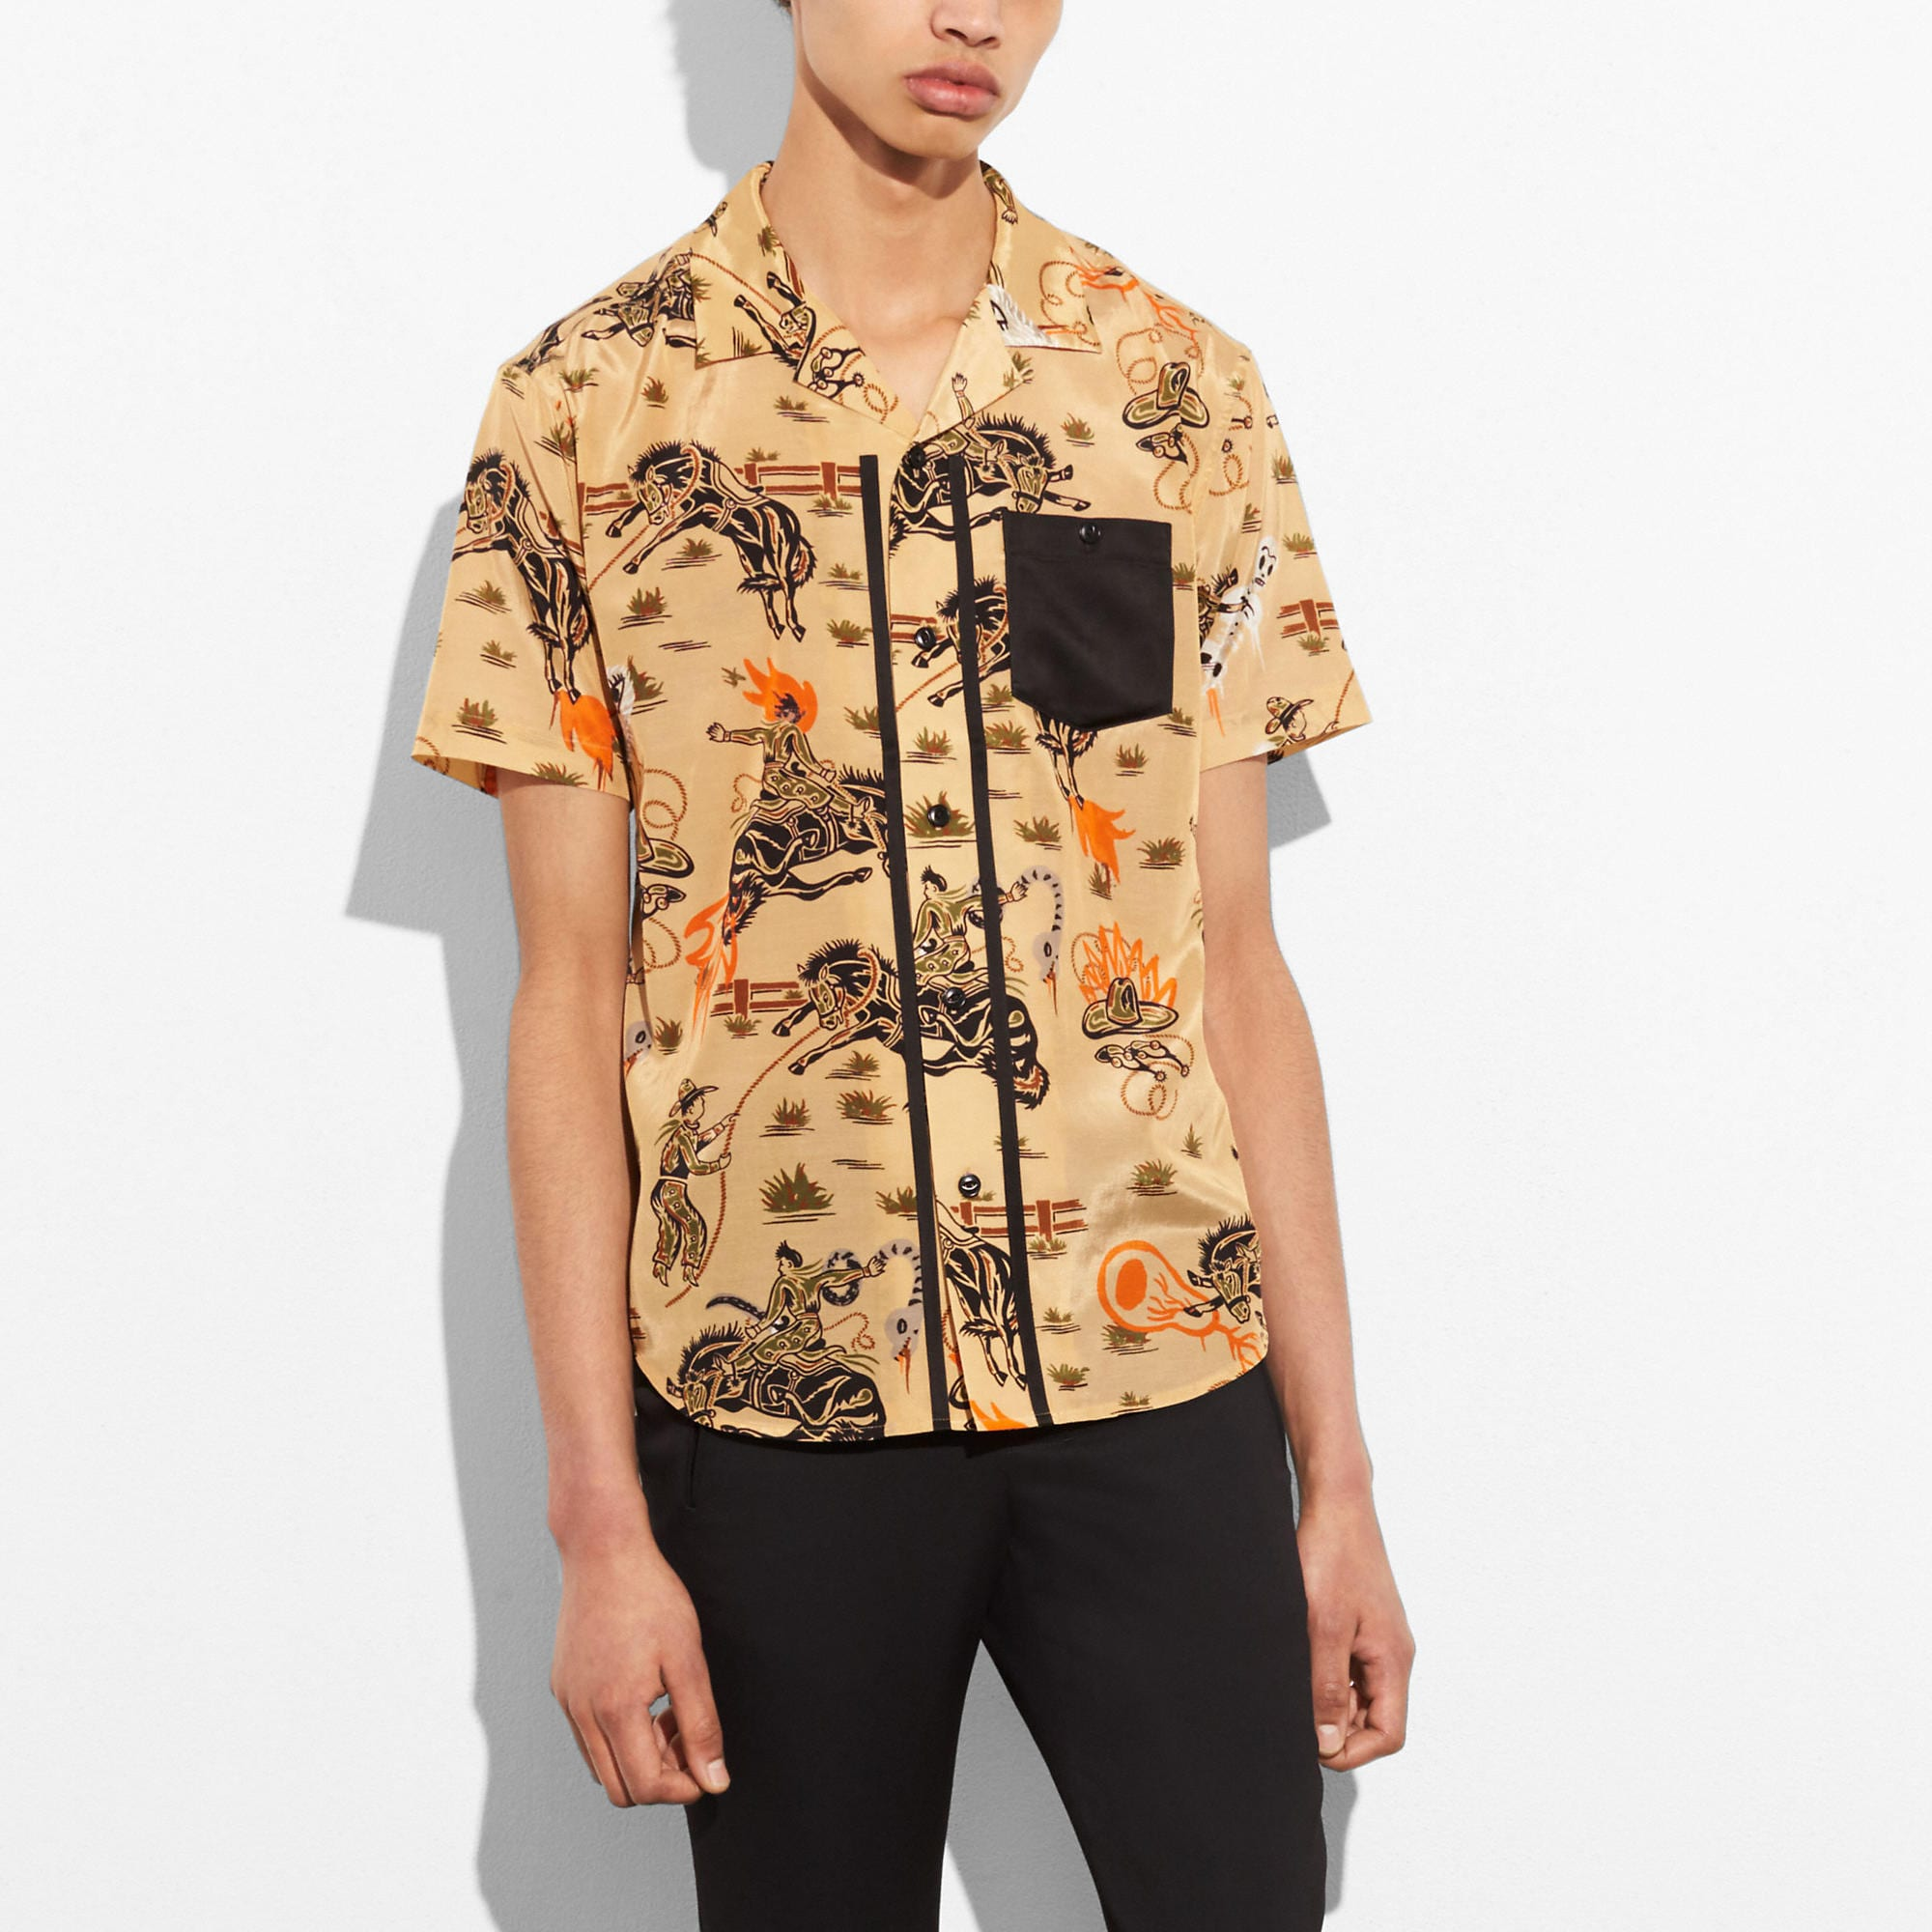 Coach Short Sleeved Shirt